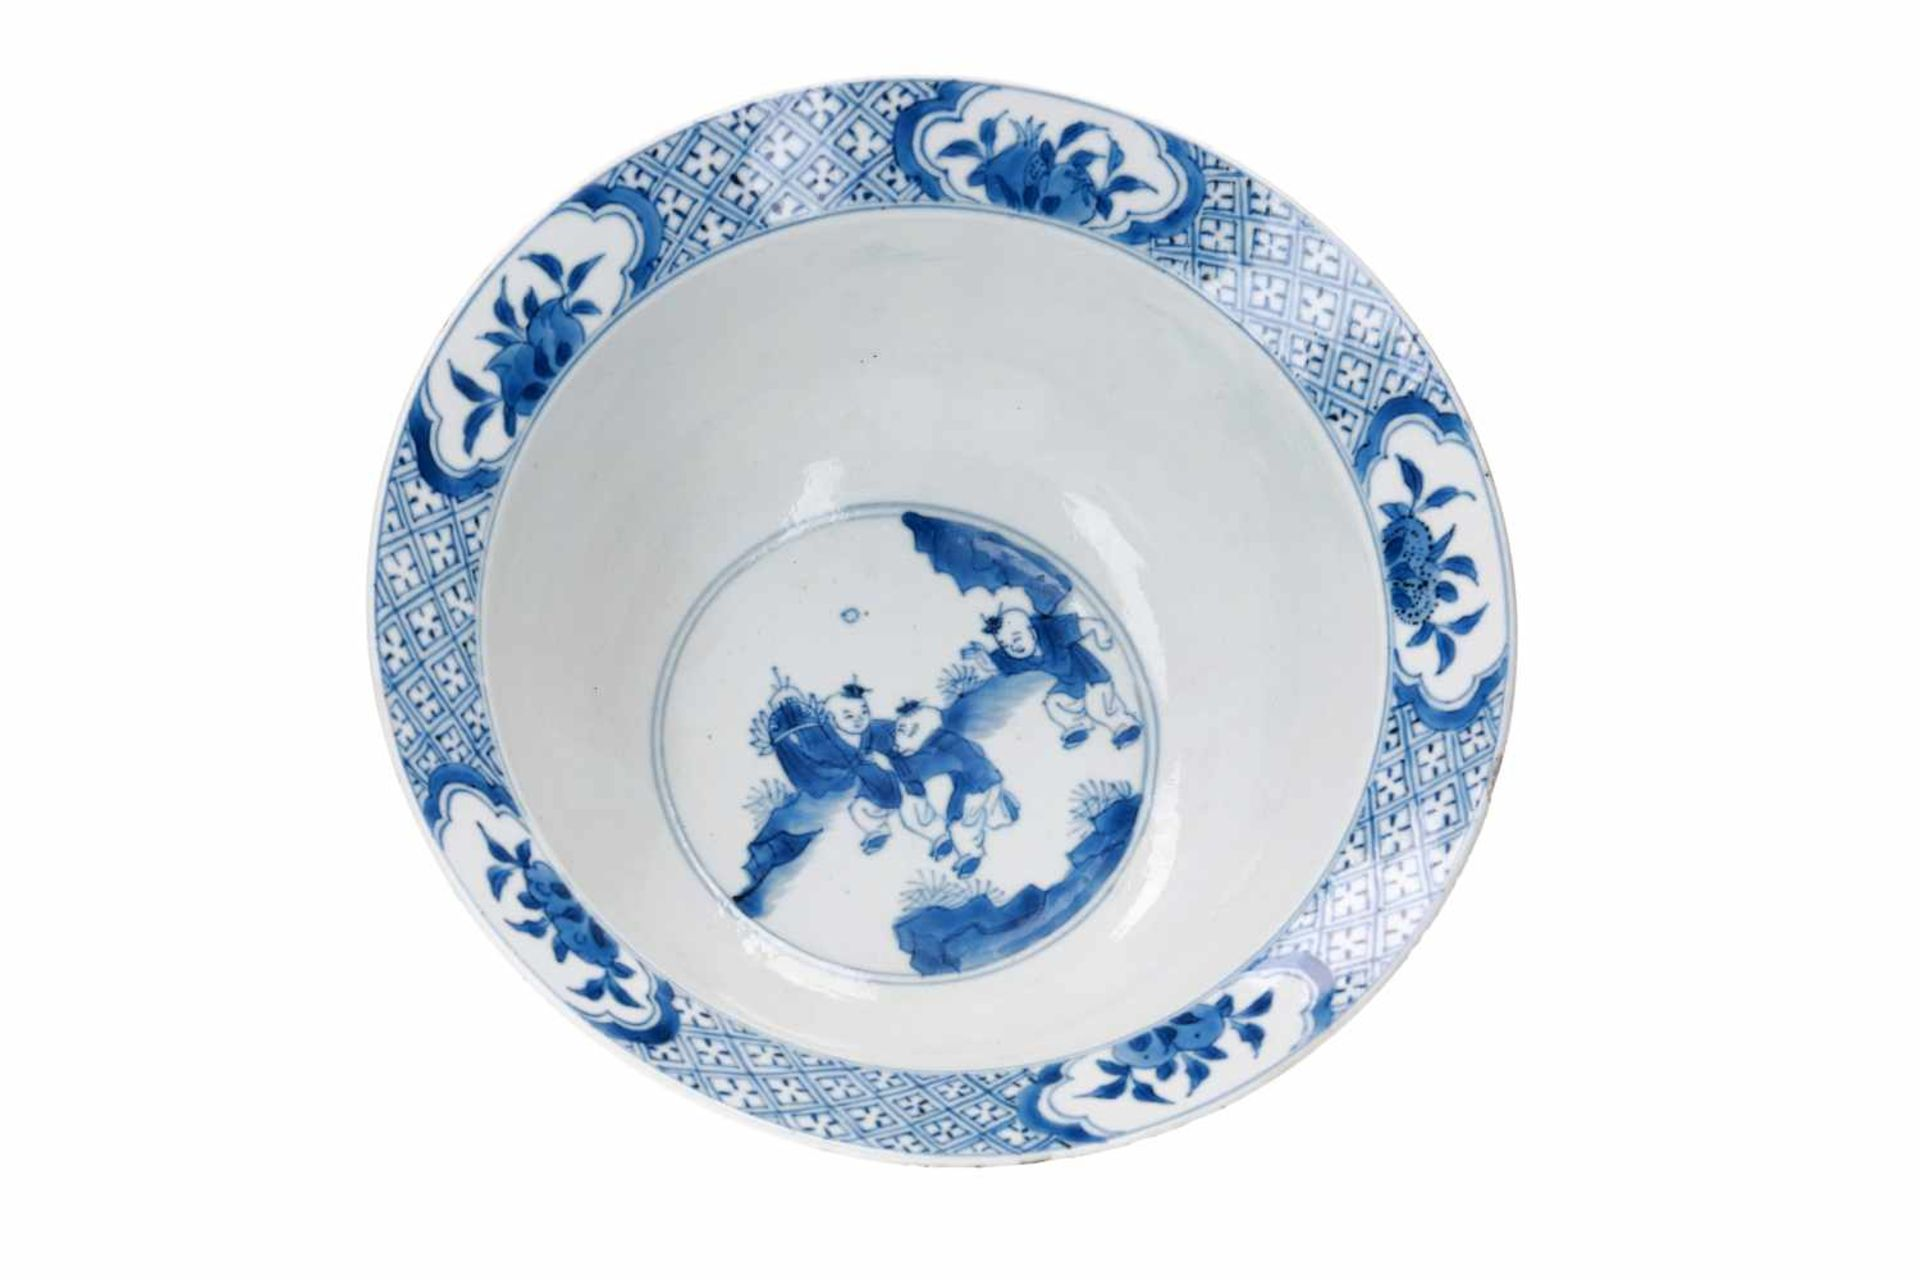 A blue and white porcelain 'klapmuts' bowl, decorated with scenes of the Romance of the Western - Bild 5 aus 6